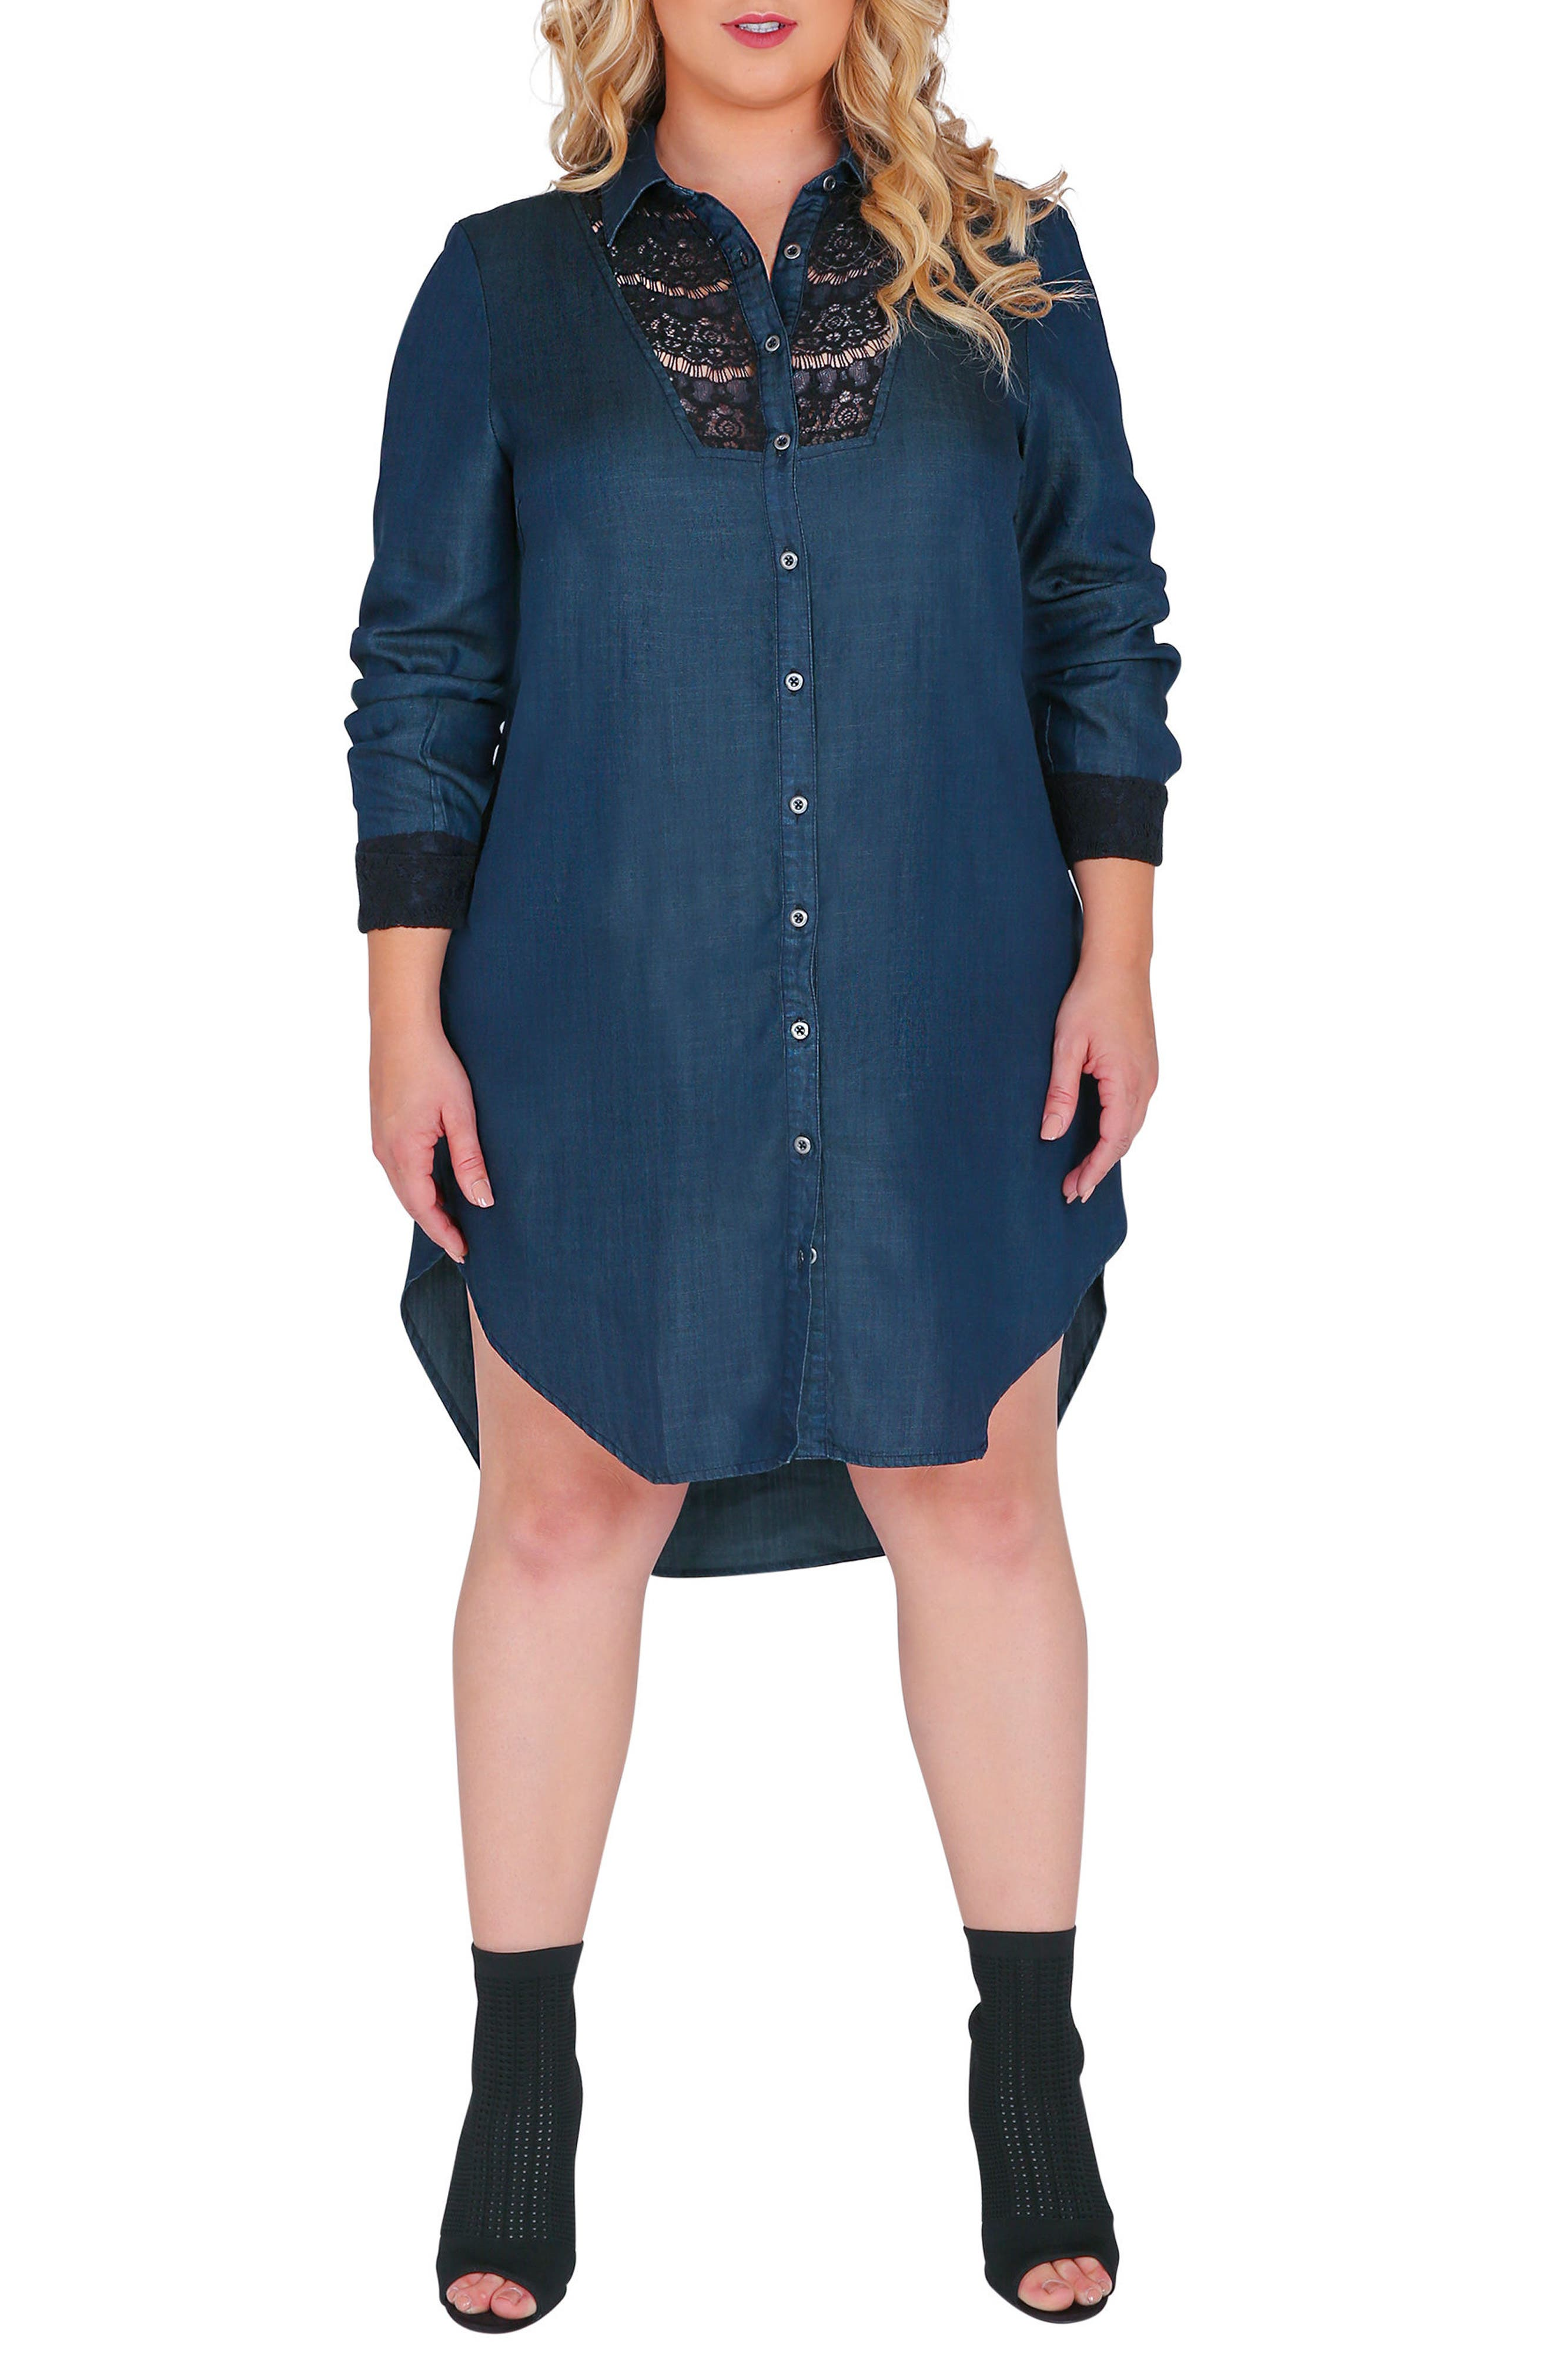 Alternate Image 1 Selected - Standards & Practices Felicity Lace Trim Denim Shirtdress (Plus Size)